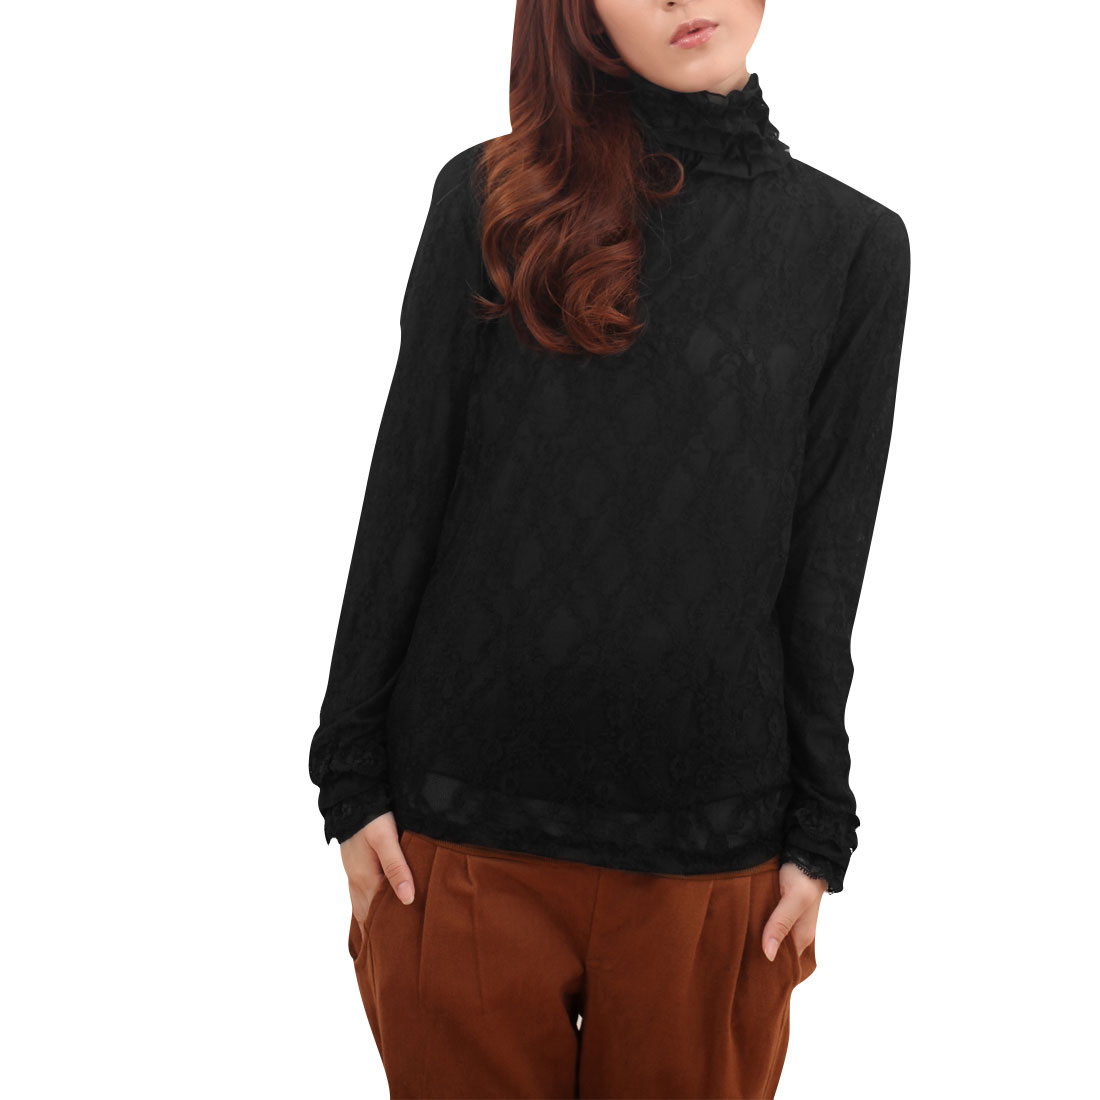 Maternity Woman Black Stand Collor Pullover Long Sleeve Blouse M